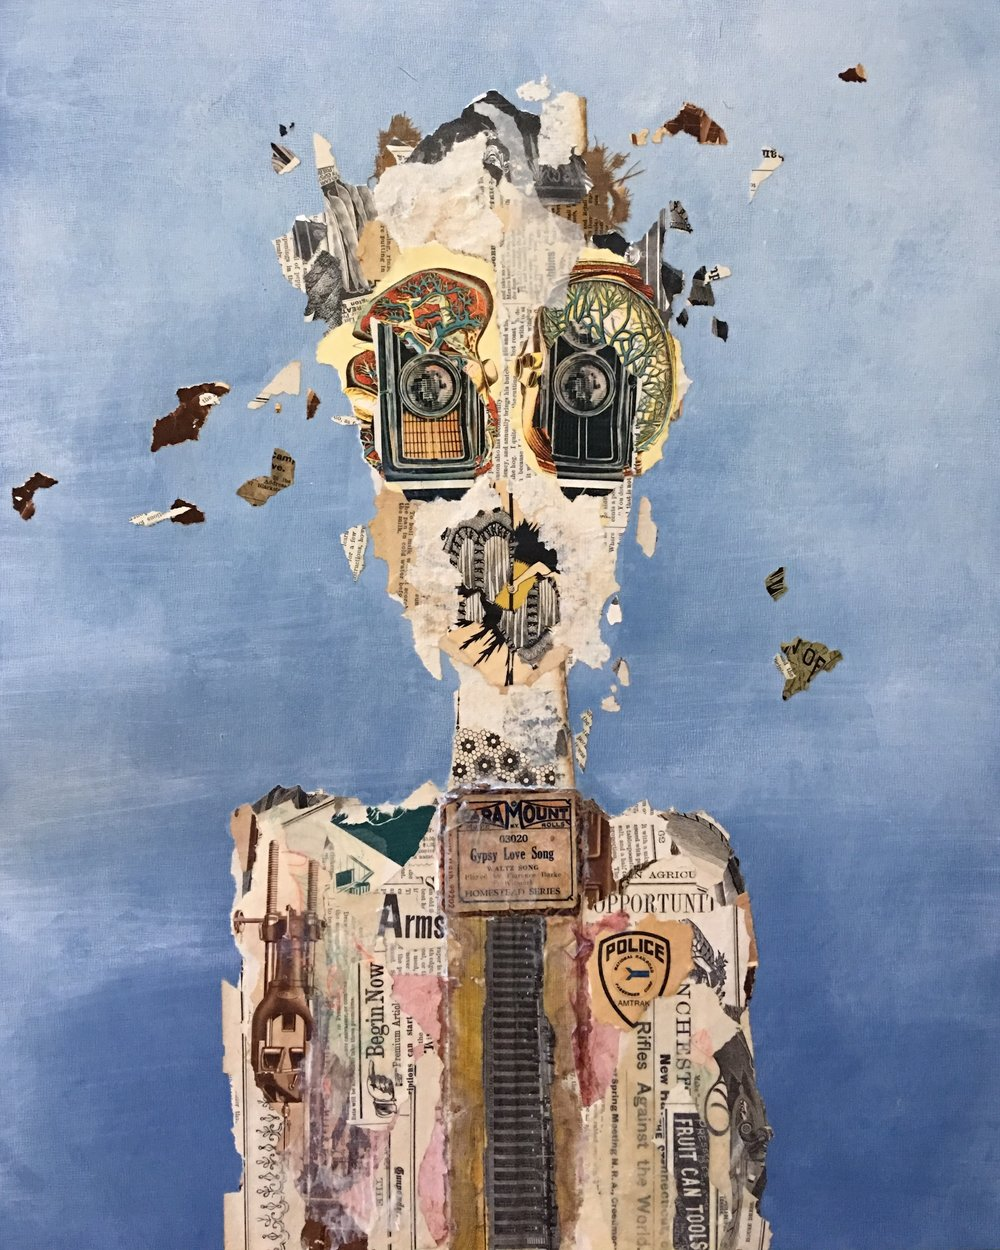 The Prepper - Mixed Media collage on panel 16x20inches